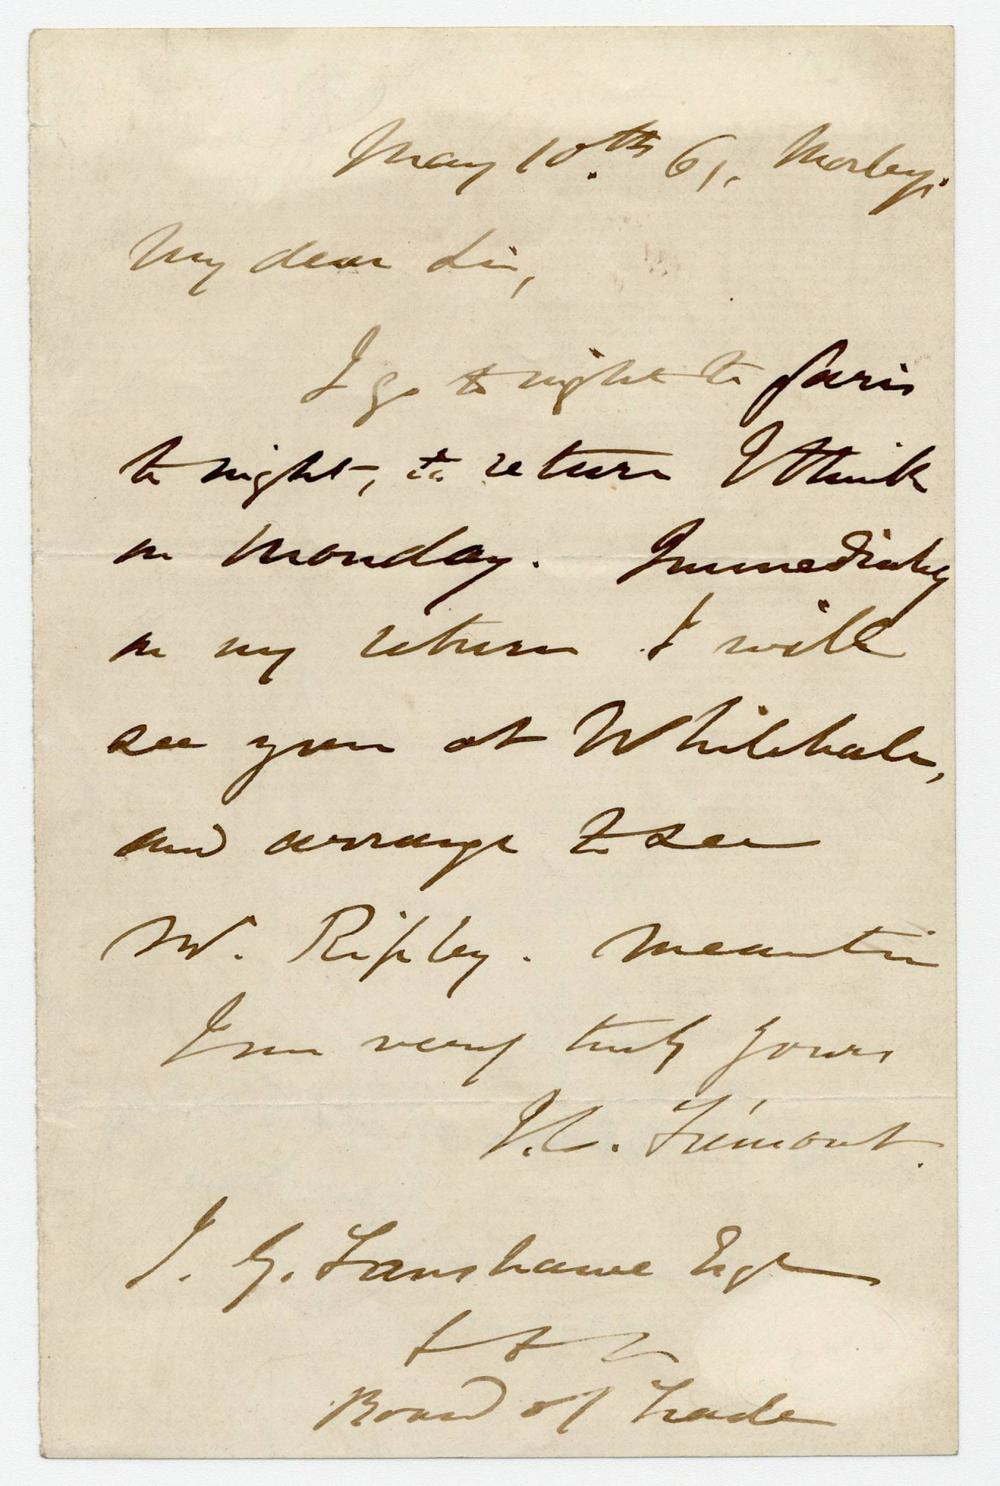 John C. Fremont Small Archive Including War-Dated ALS 5 Days before Lincoln Appointed him Major General